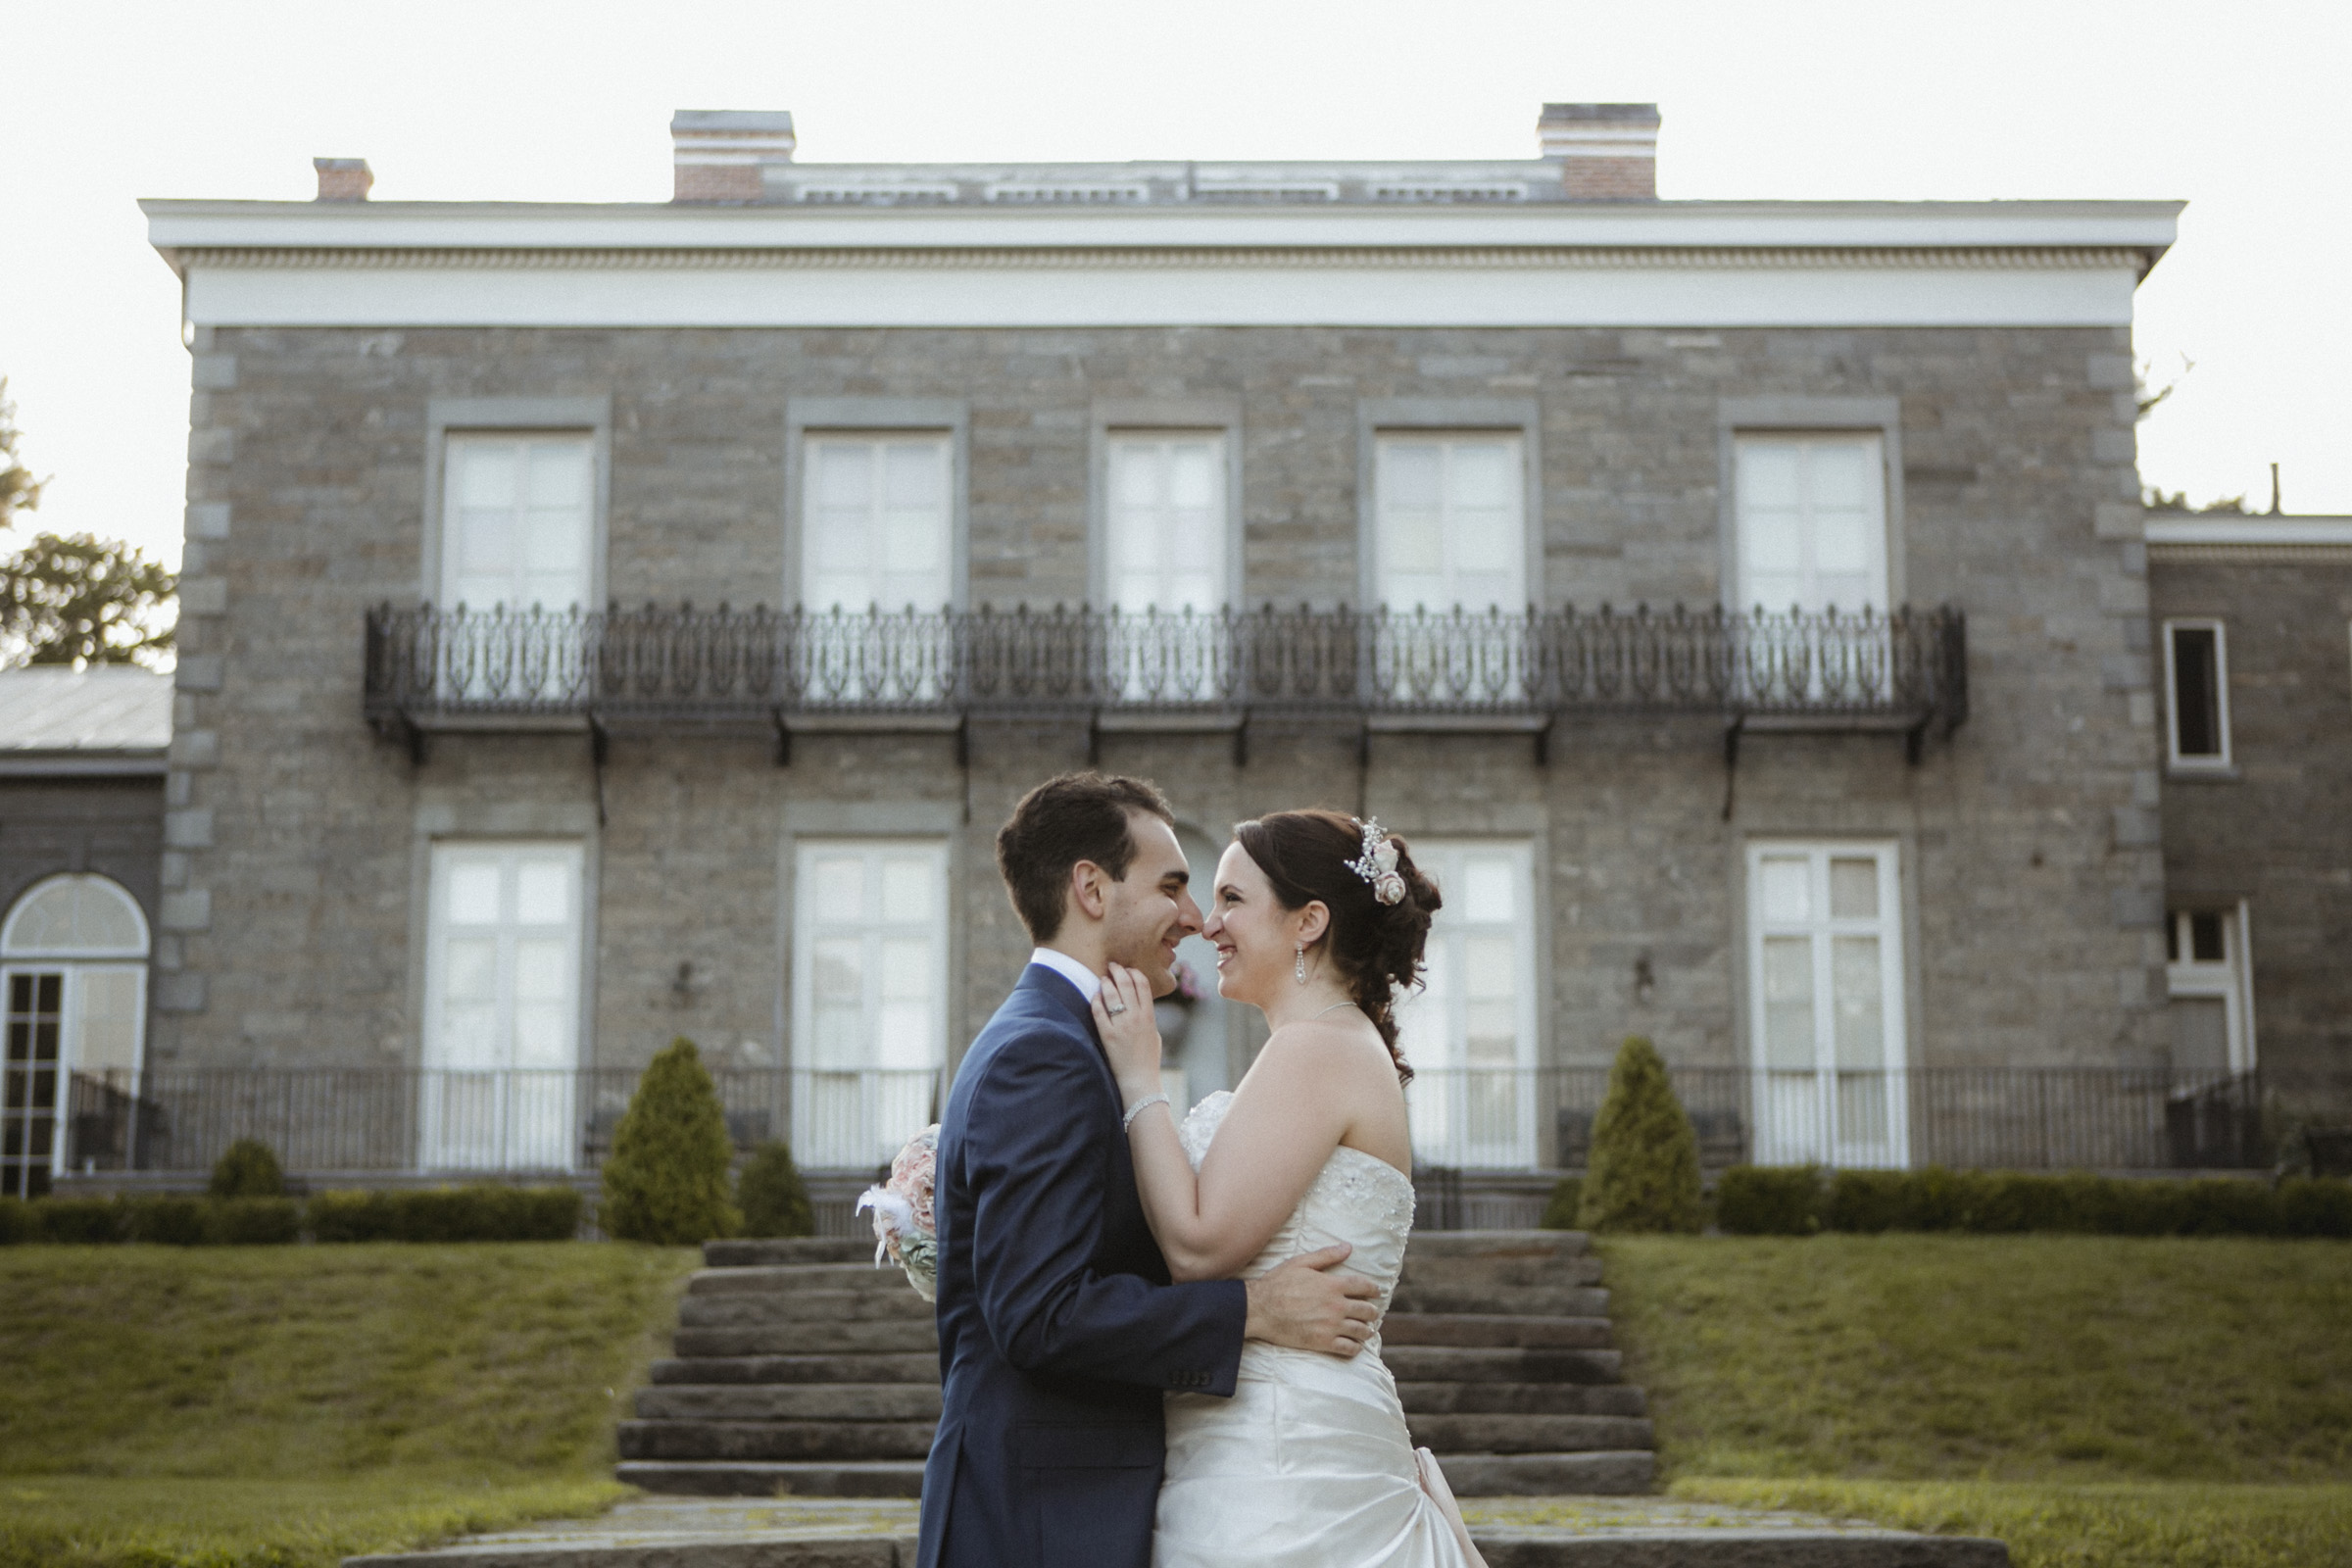 Playful bride and groom | Bartow-Pell Mansion wedding | Manhattan wedding | Bronx Wedding | Cathy & Antonello's wedding | Amy Sims Photography